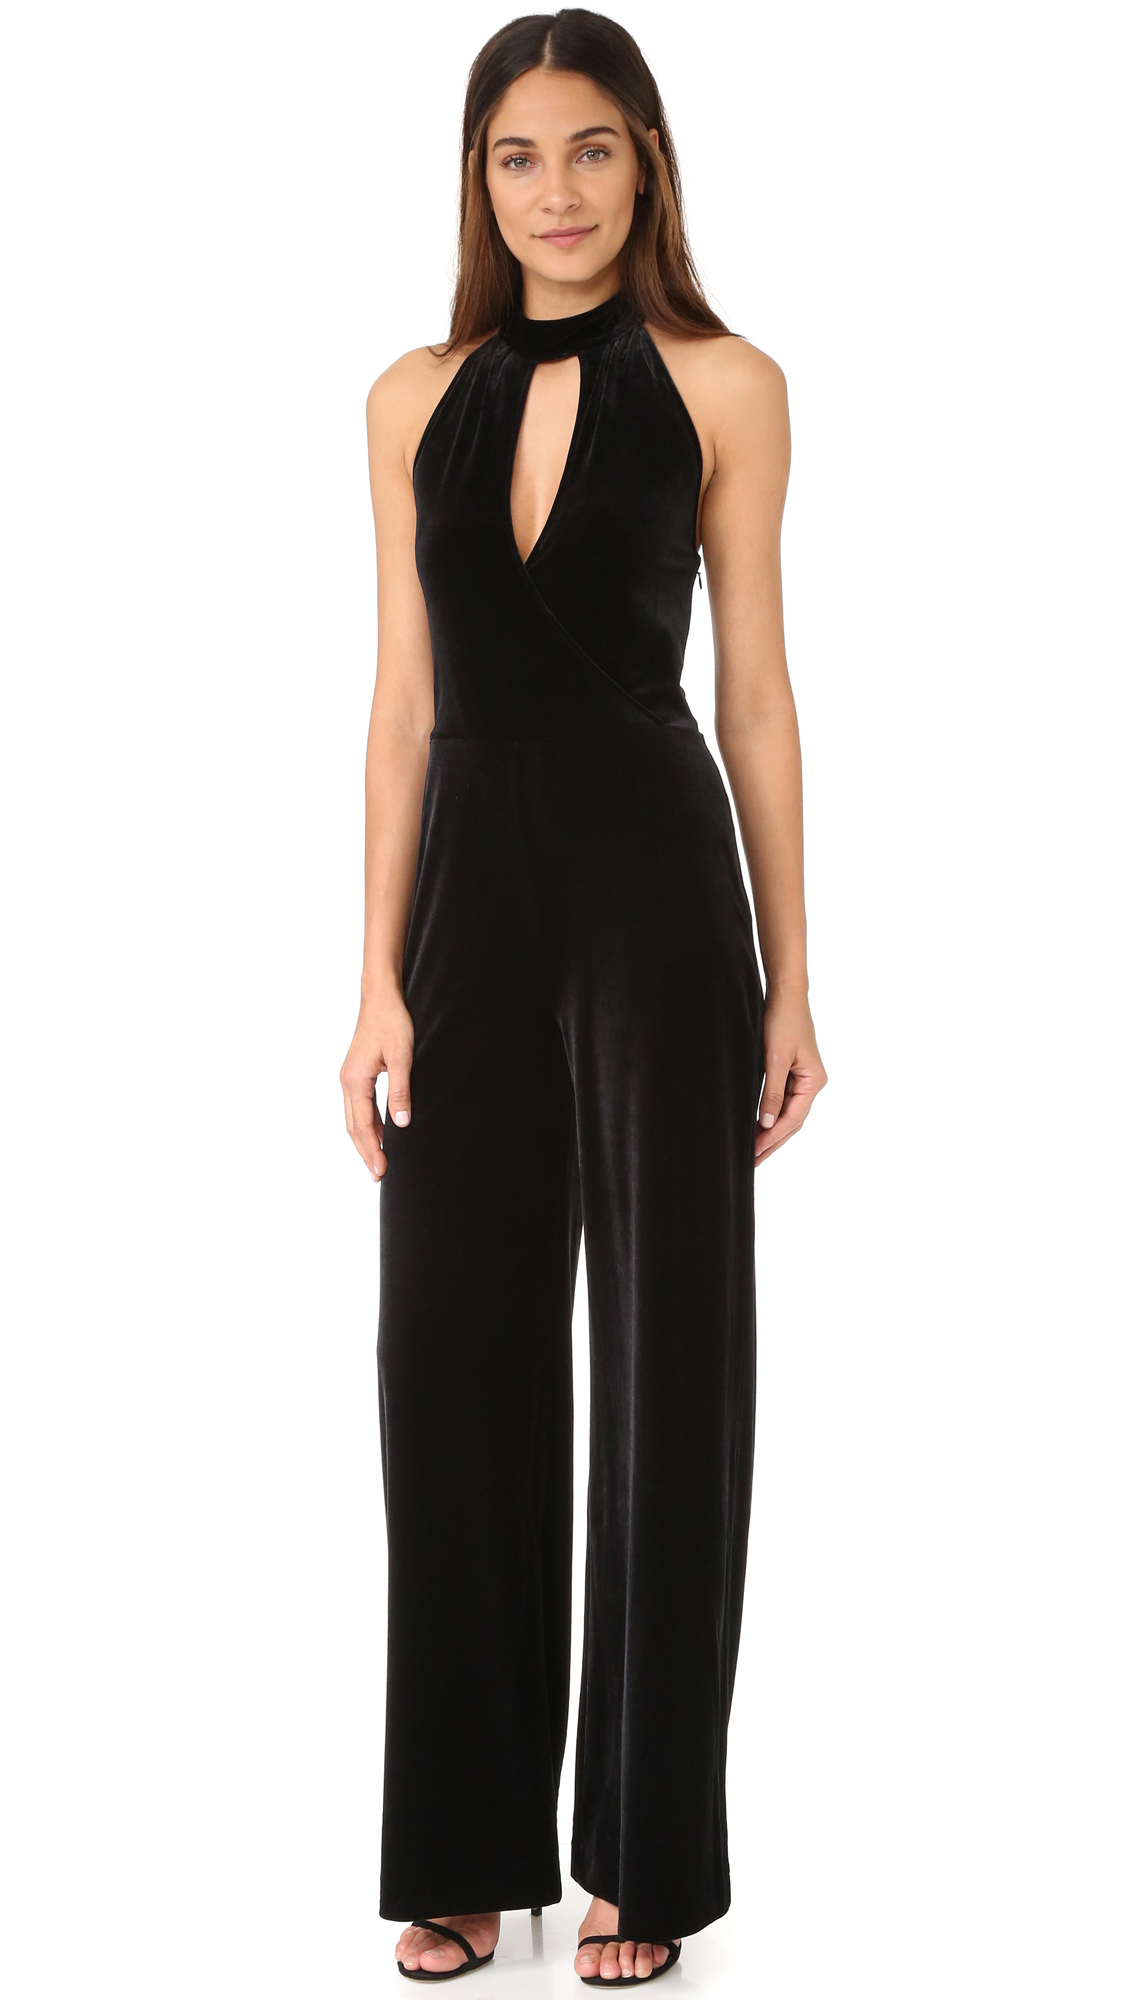 Soft, slinky velour gives this wide leg 7 For All Mankind jumpsuit a luxe, retro inspired feel. Boning structures the sides, and halter straps tie behind the neck. Hidden back zip. Fabric: Velour. 90% polyester/10% spandex. Dry clean.